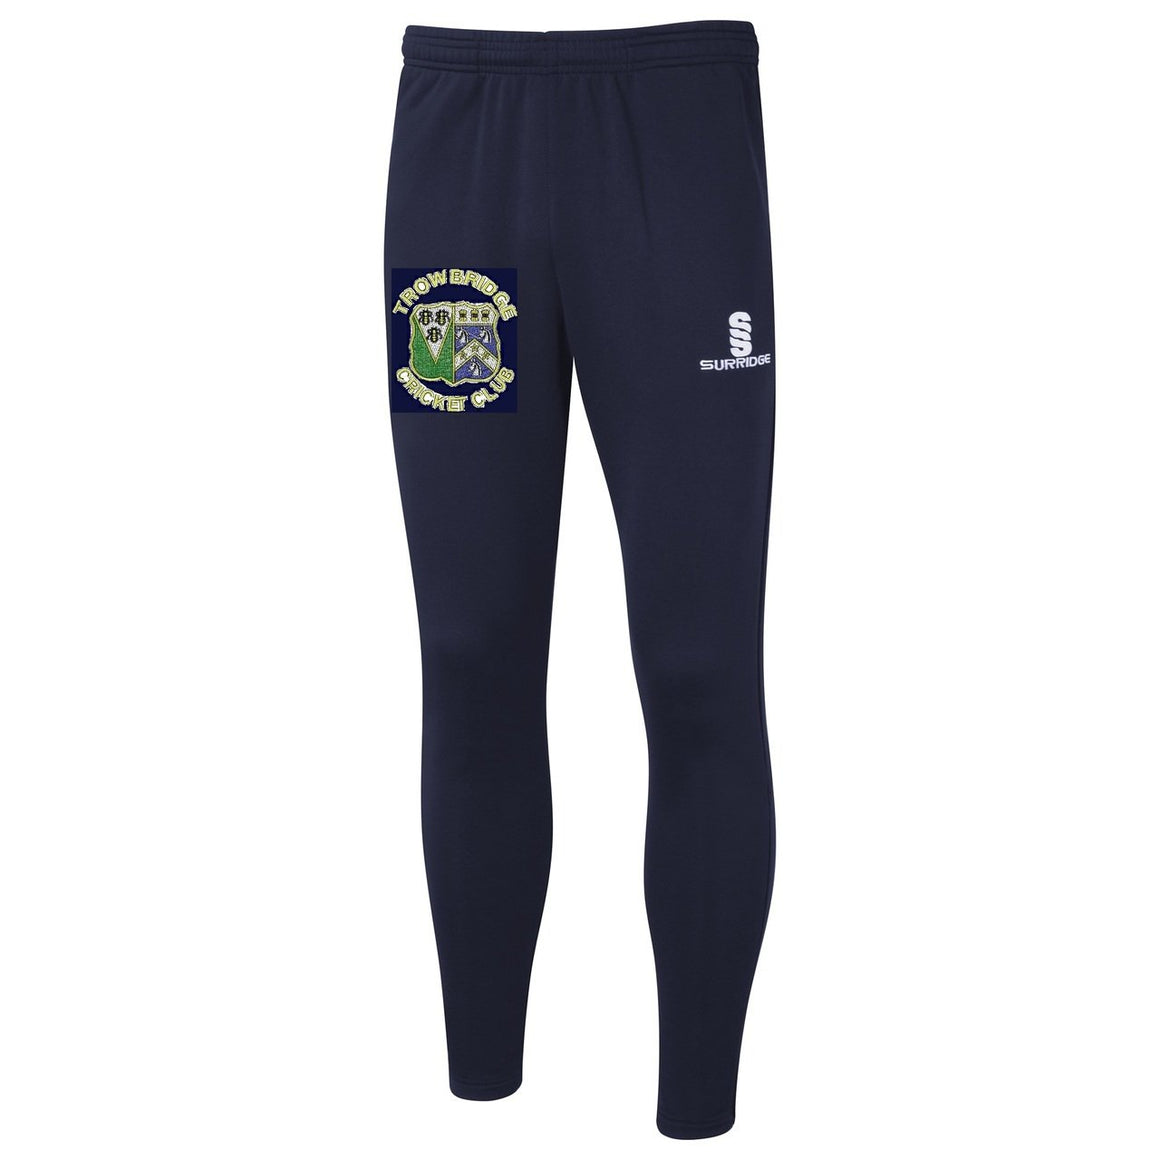 Trowbridge Track Pants